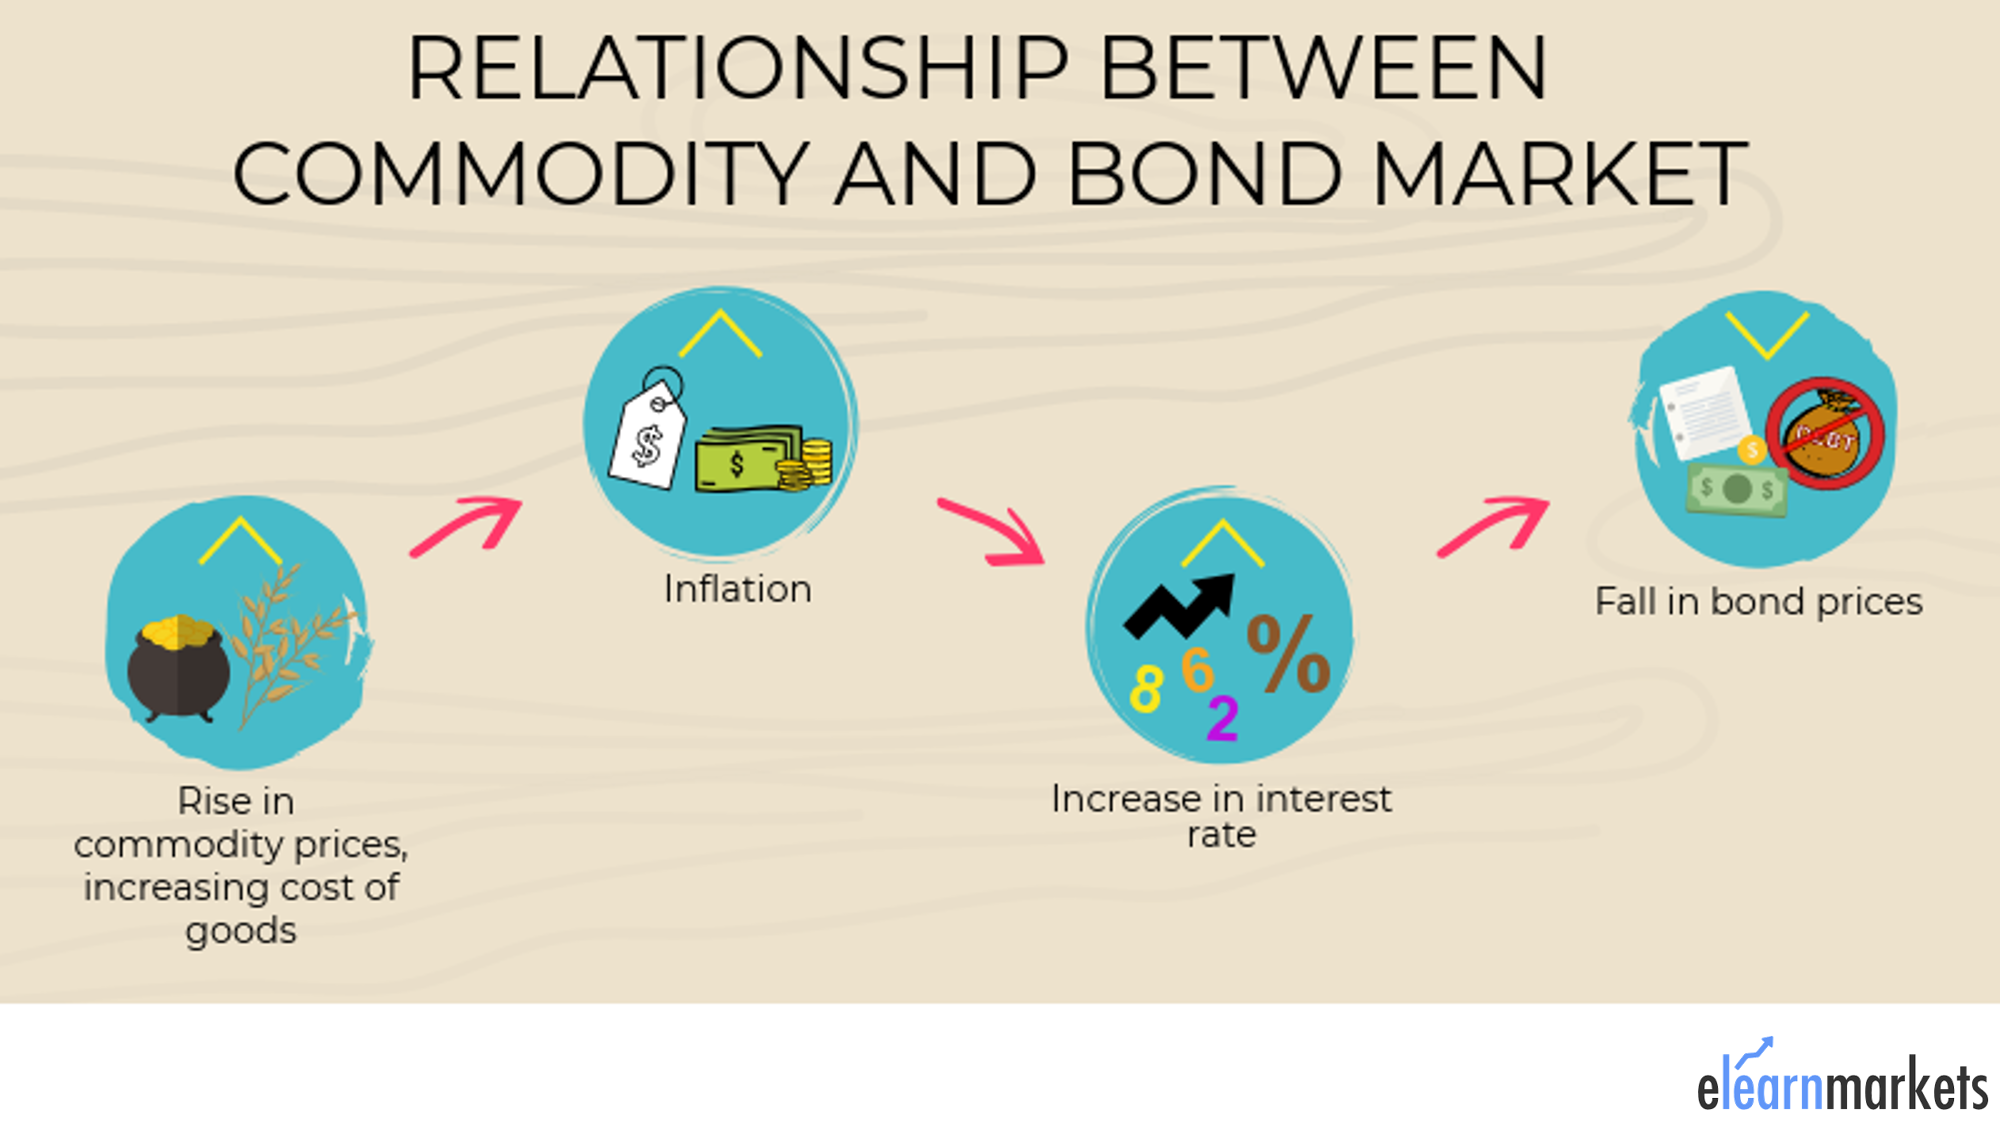 Commodity price and Bond price